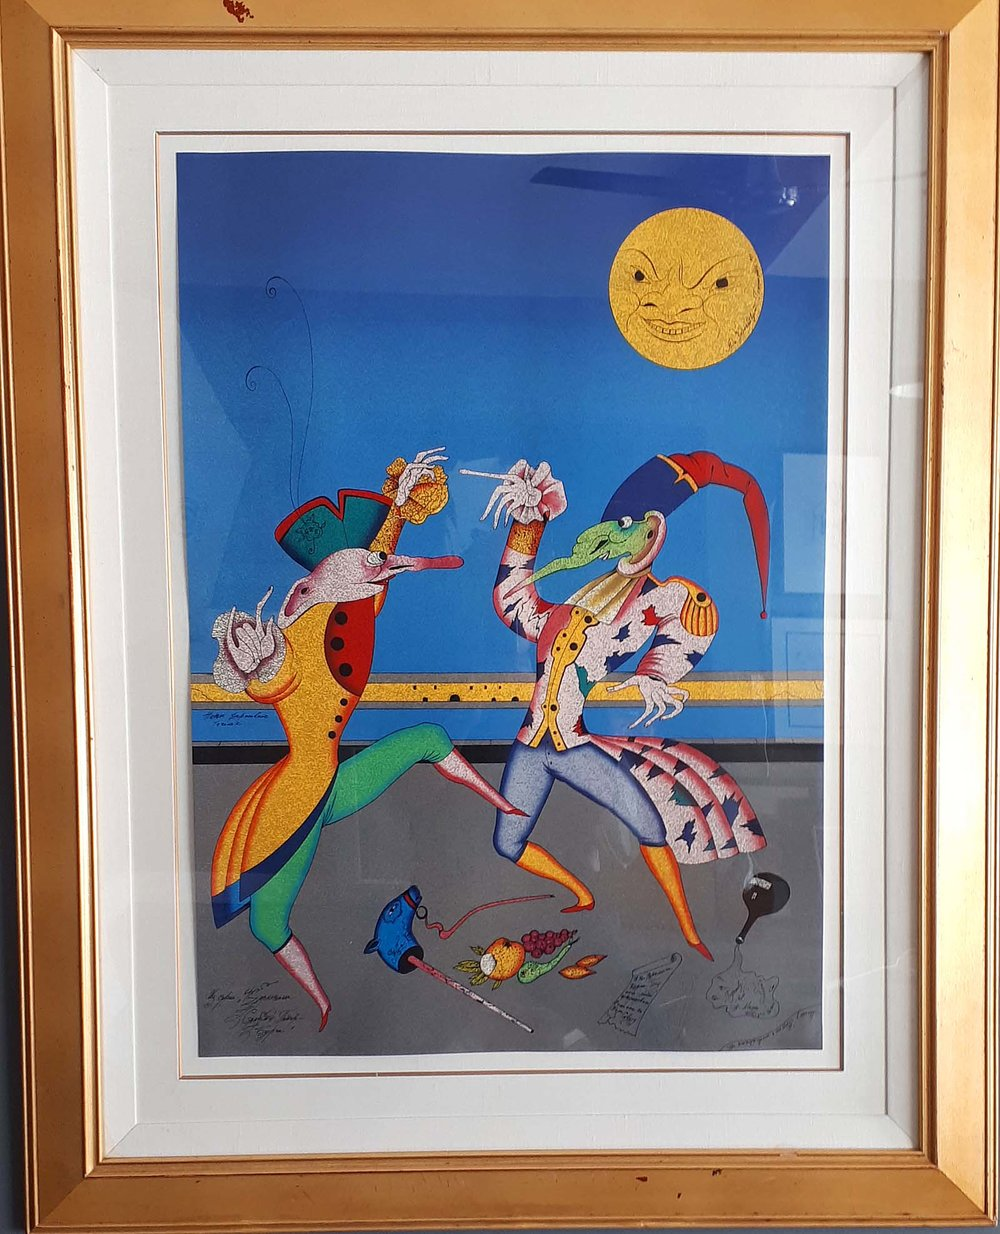 "Mihail Chemaikin, Russia, Original Lithograph 117/195, ""La Danse D'Ete"", Size: 40 x 51 inches, One of a set of three, Est. value: 11,000.00. Price: 3,500.00 for the set of three."